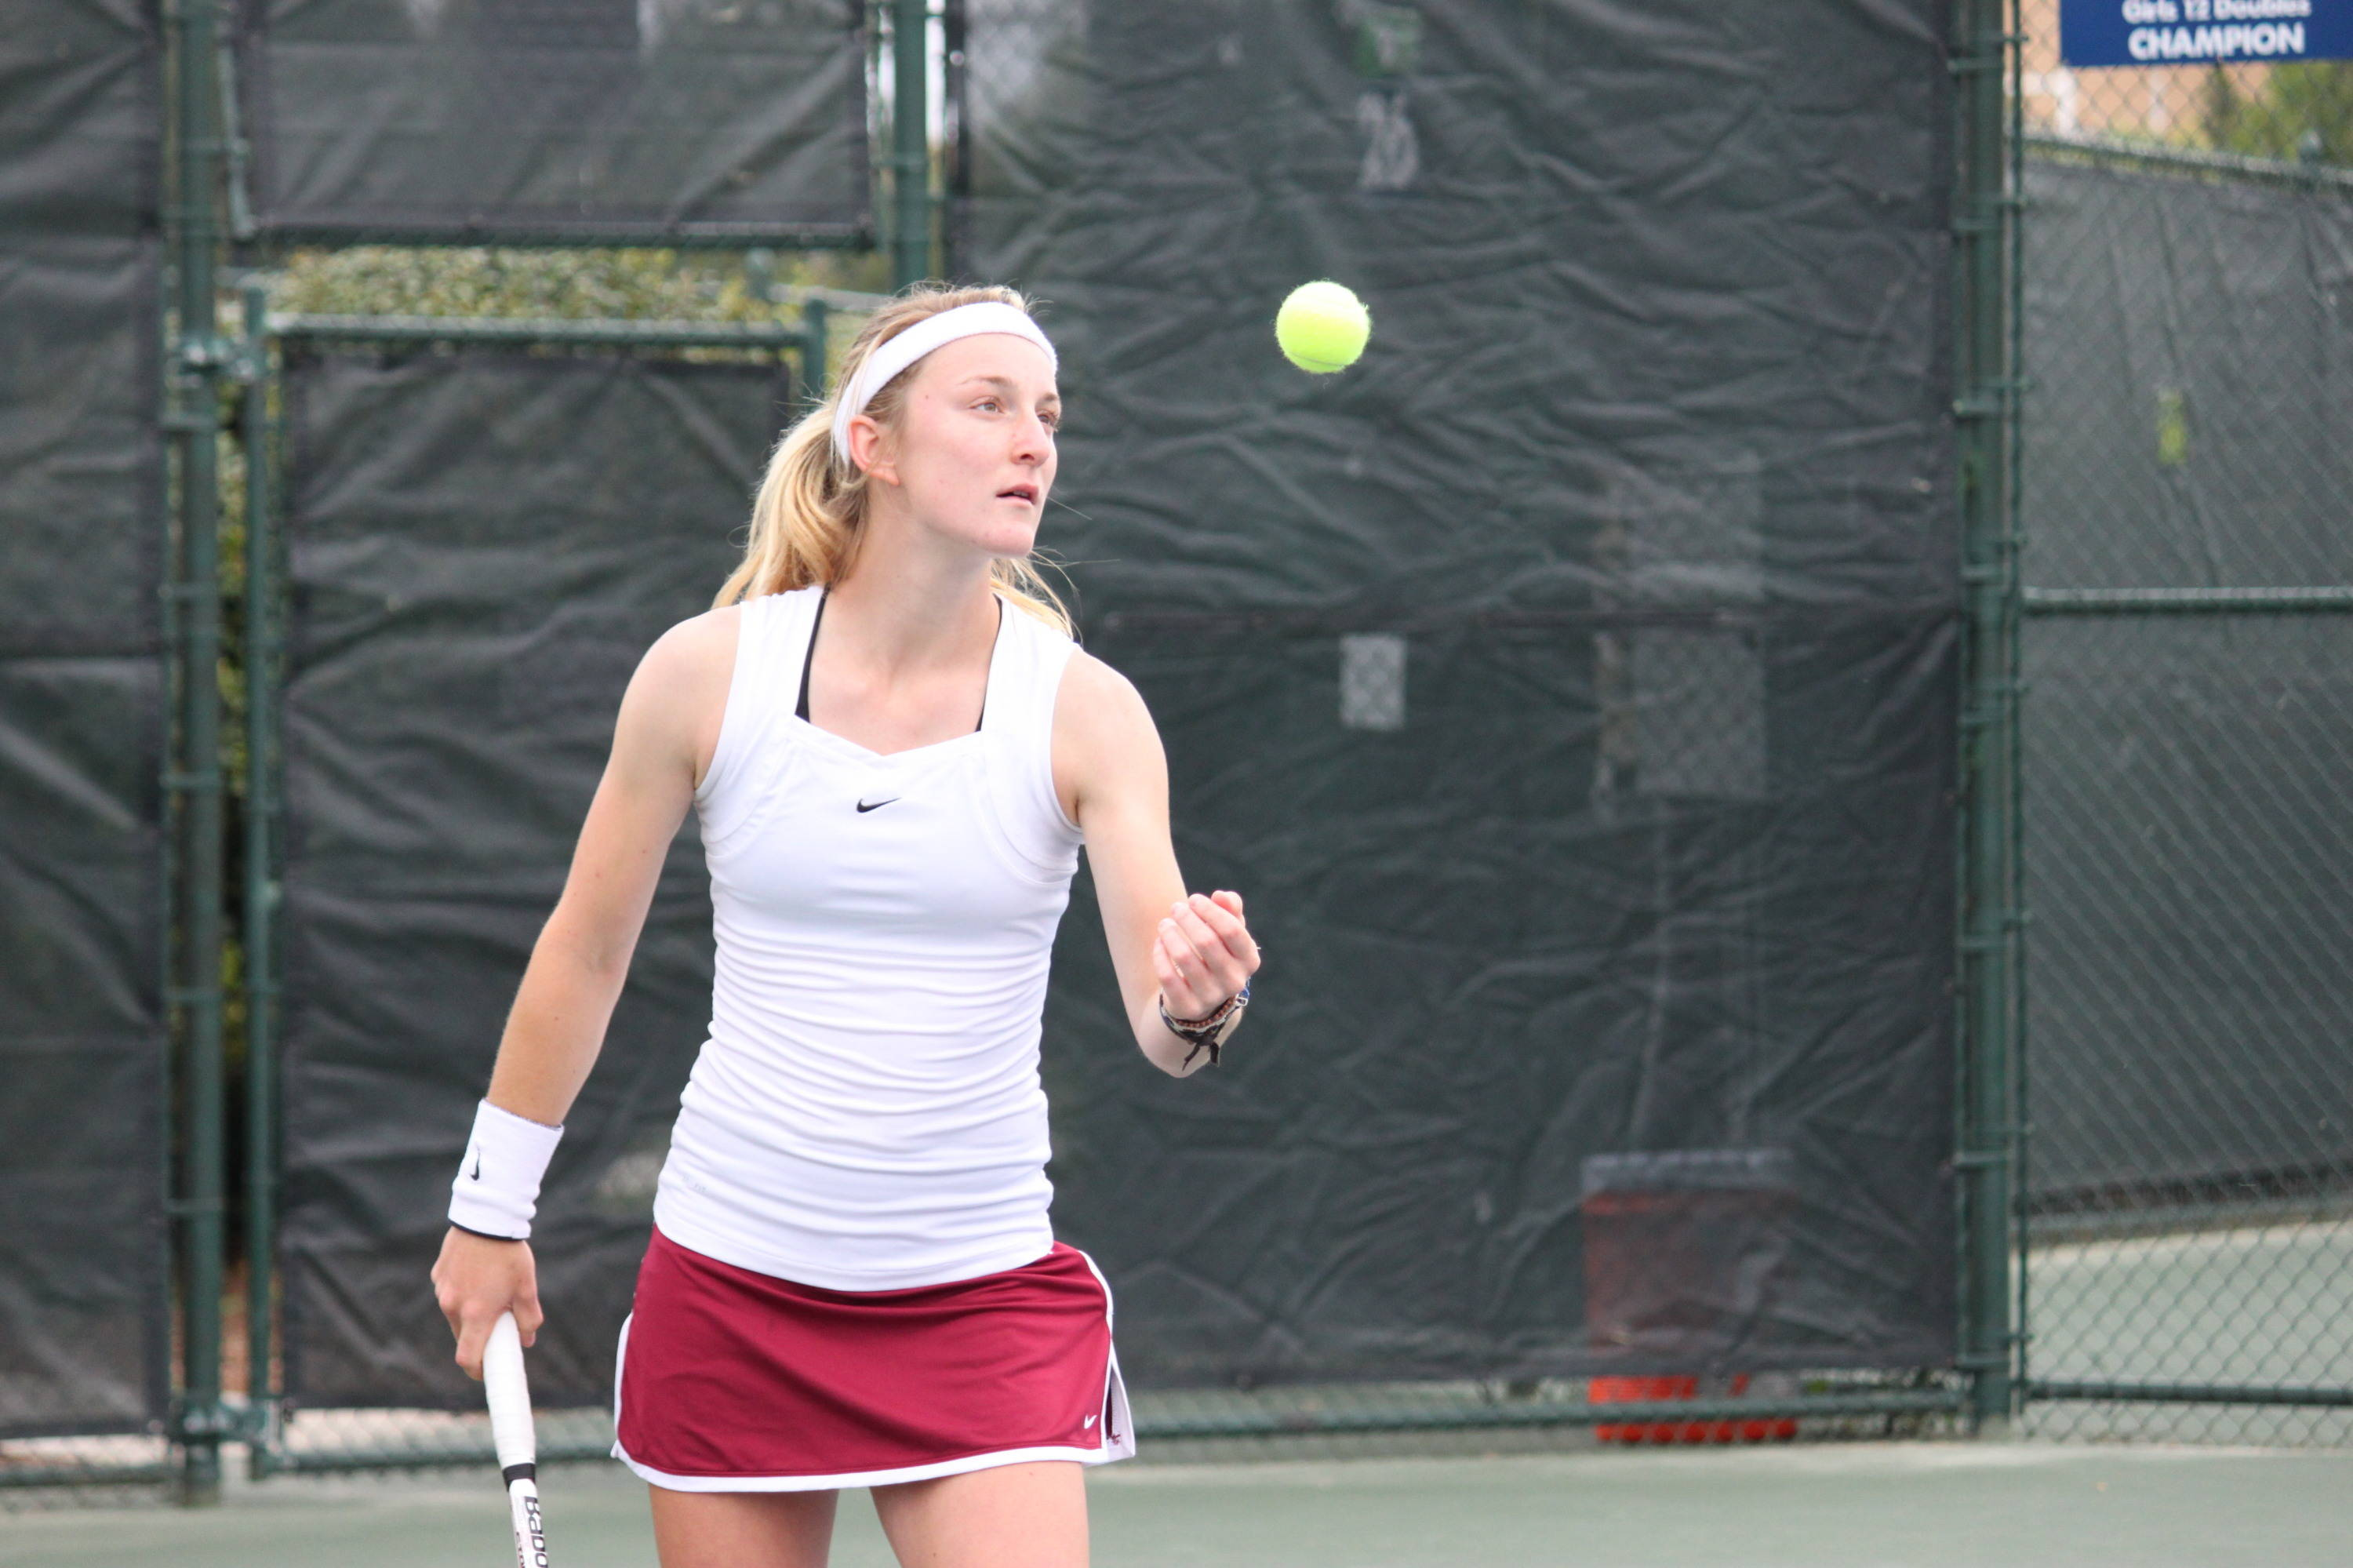 Ruth Seaborne tossing the ball as she gets ready to serve.